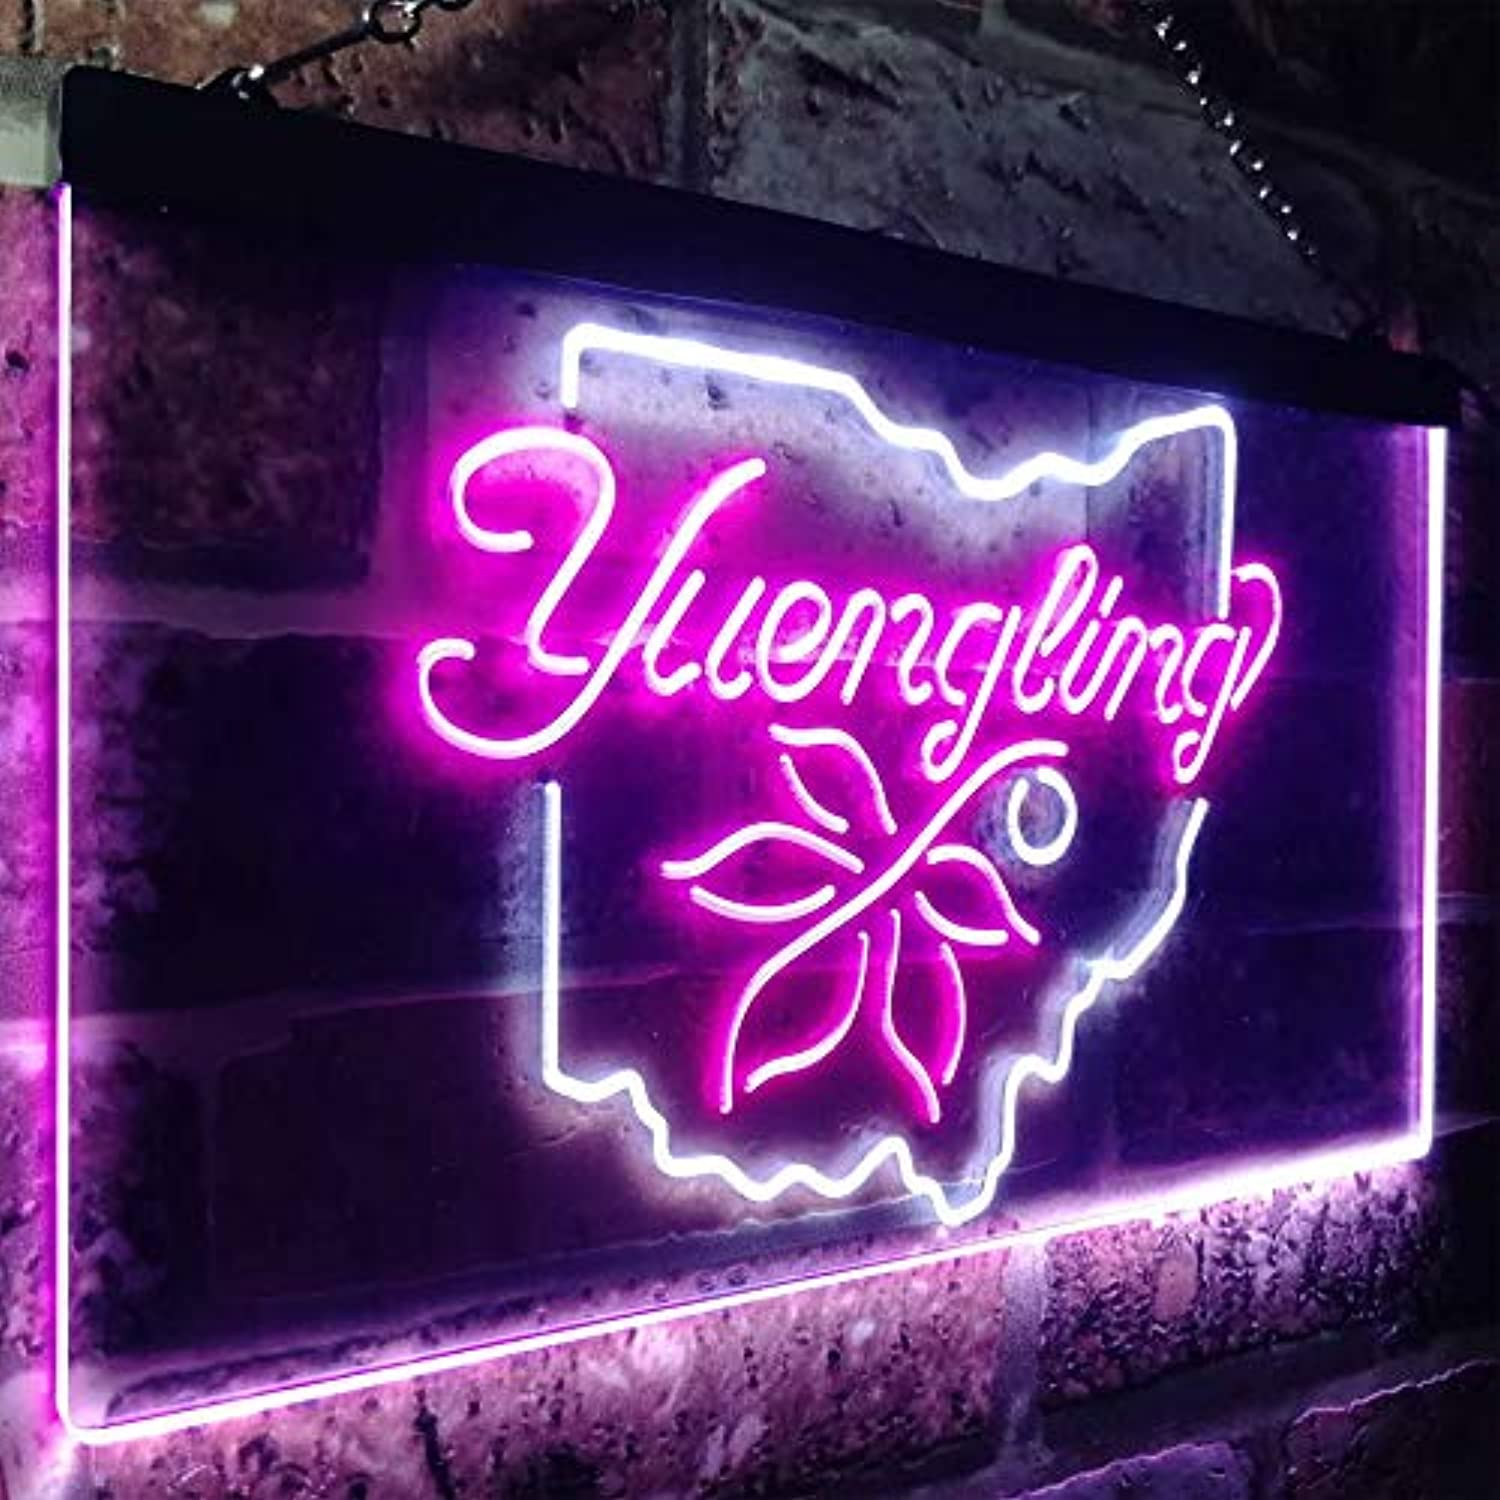 Zusme Yuengling Ohio State Buckeye Larger Beer Novelty LED Neon Sign Weiß + lila W40cm x H30cm